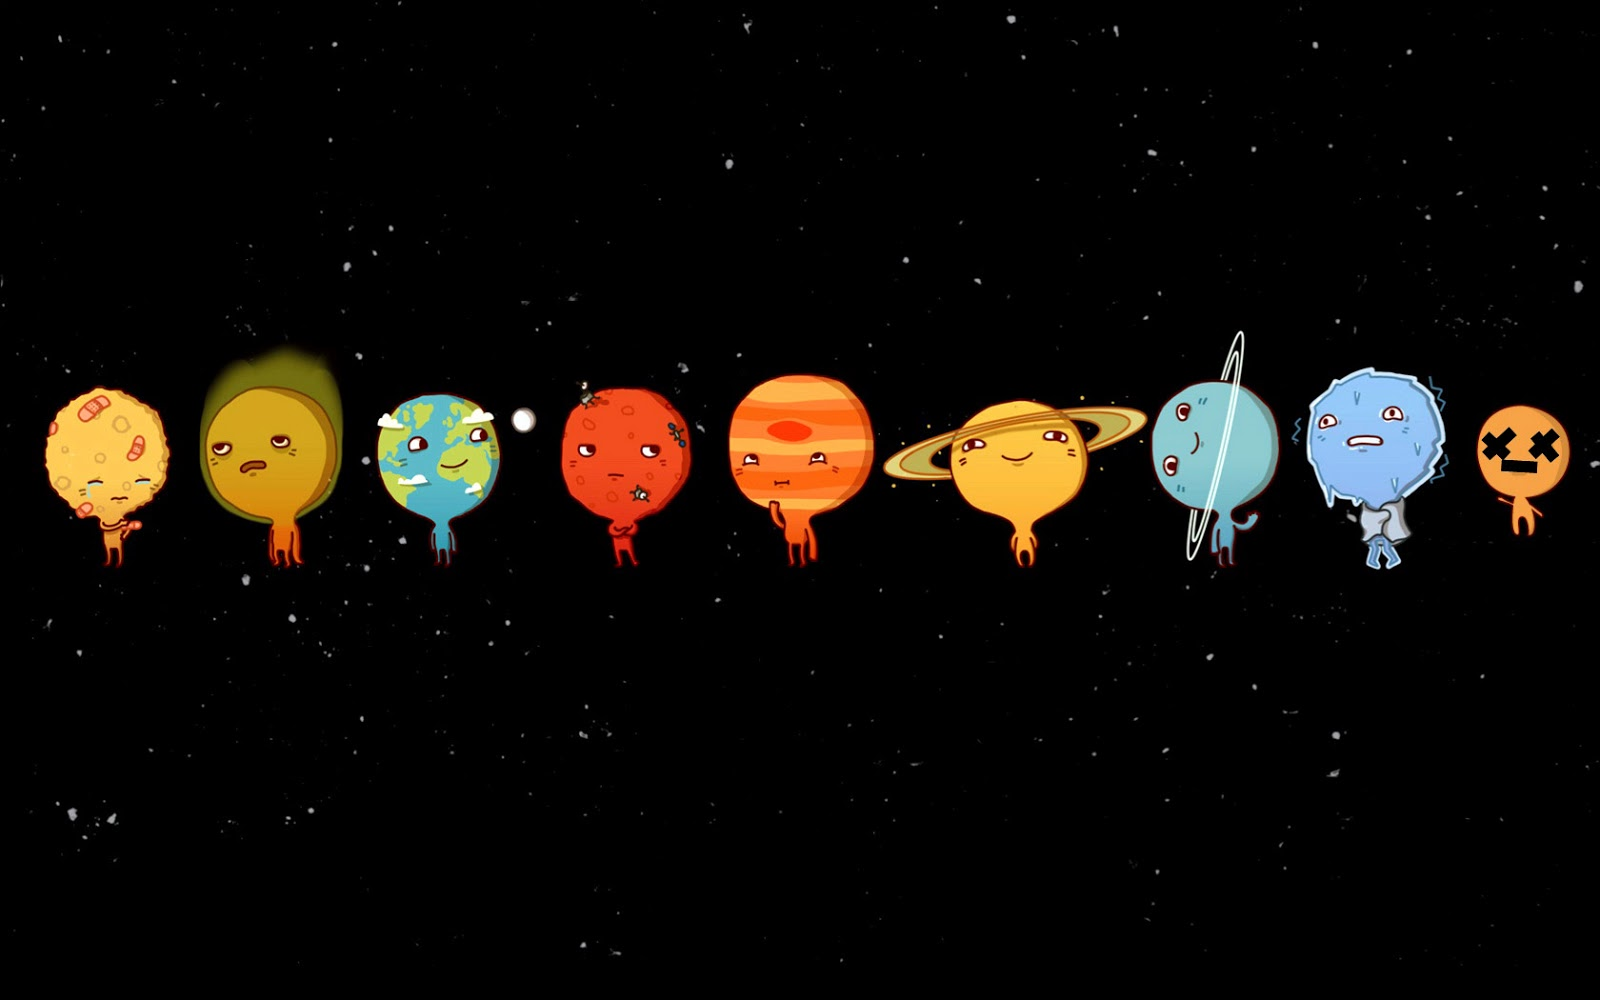 solar system hd background - photo #22